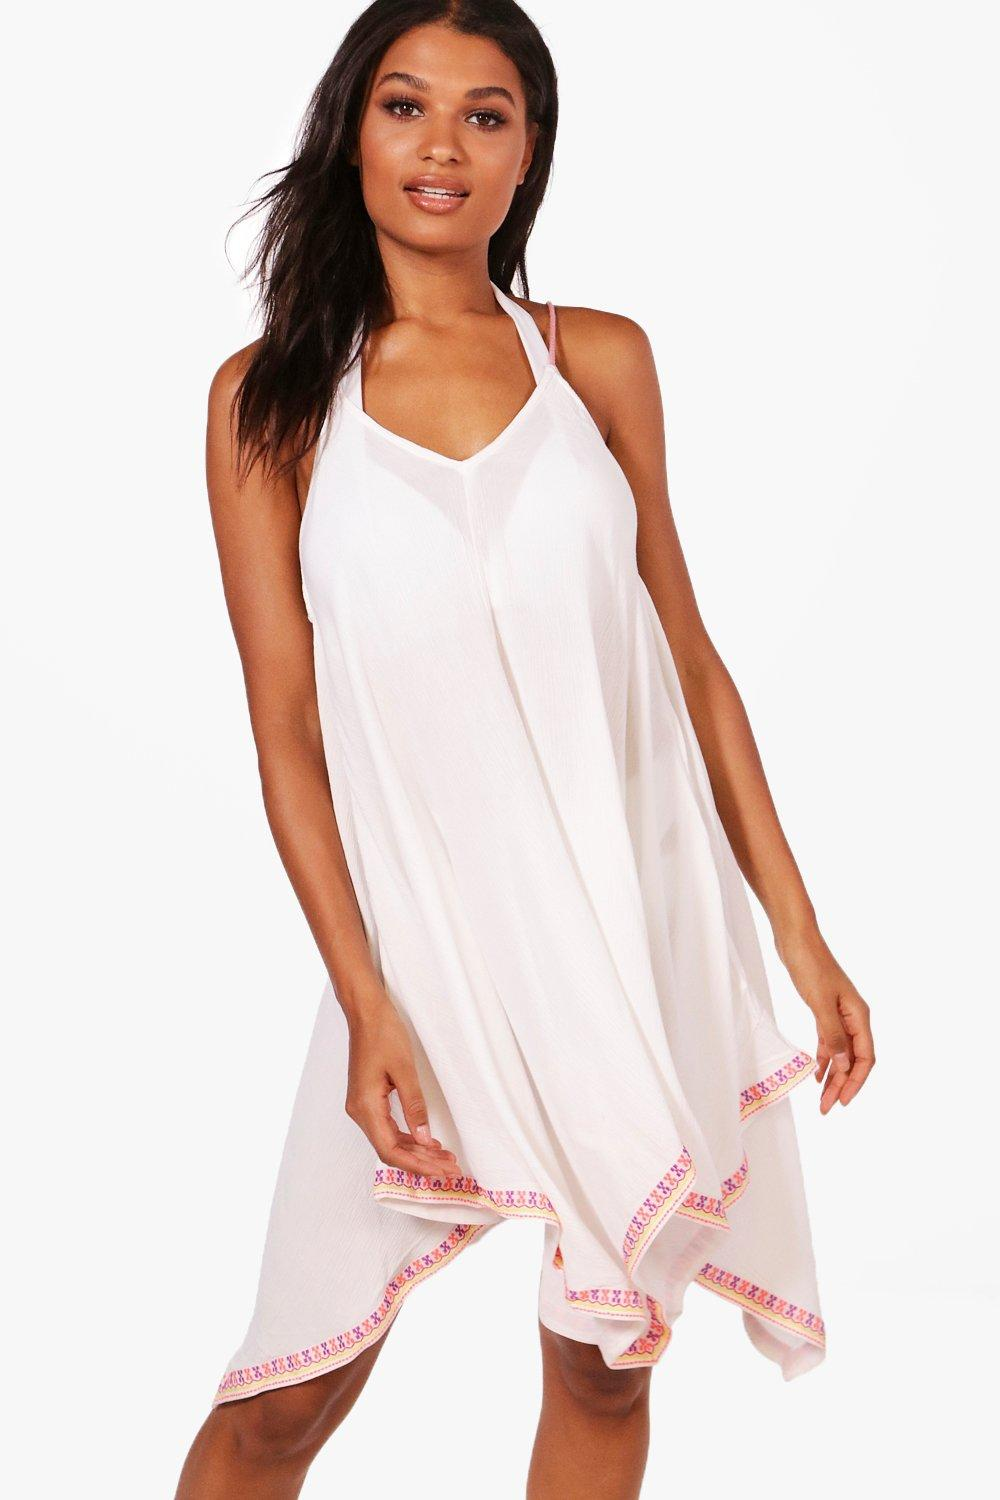 51695e4b77 ... Embroidered Beach Dress. Hover to zoom